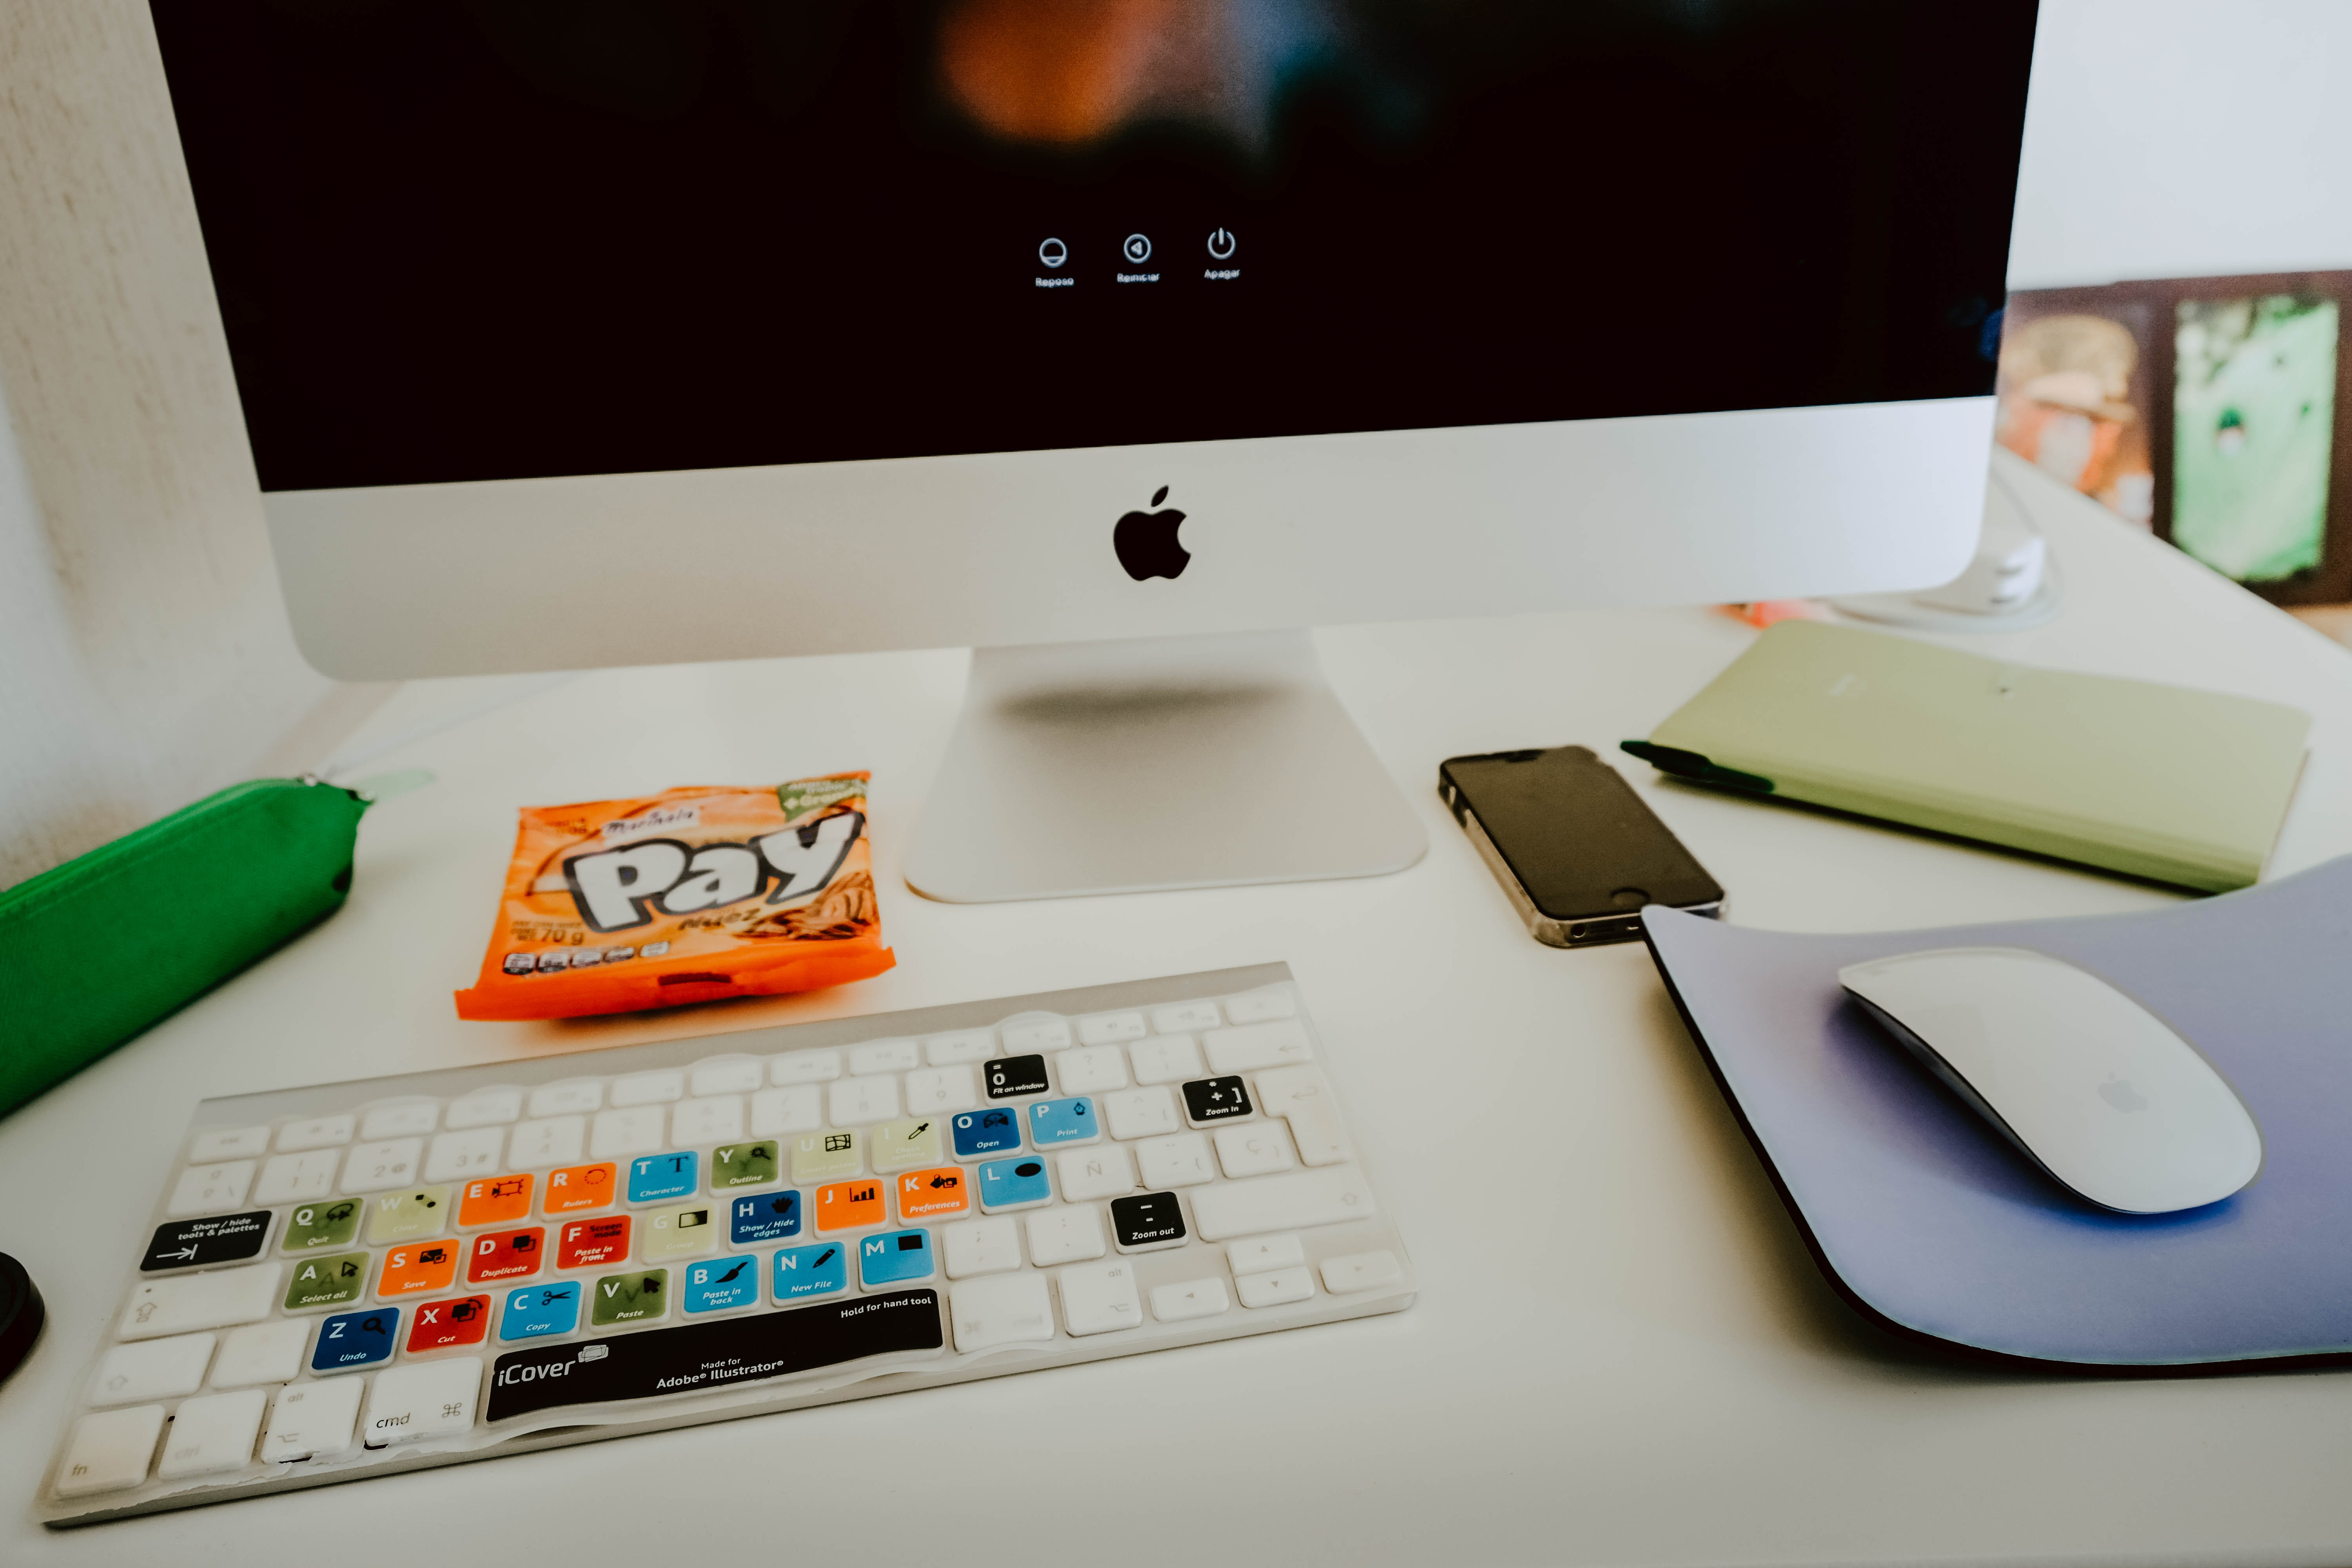 turned on silver iMac, Apple Magic Mouse, and Apple Magic Keyboard on desk